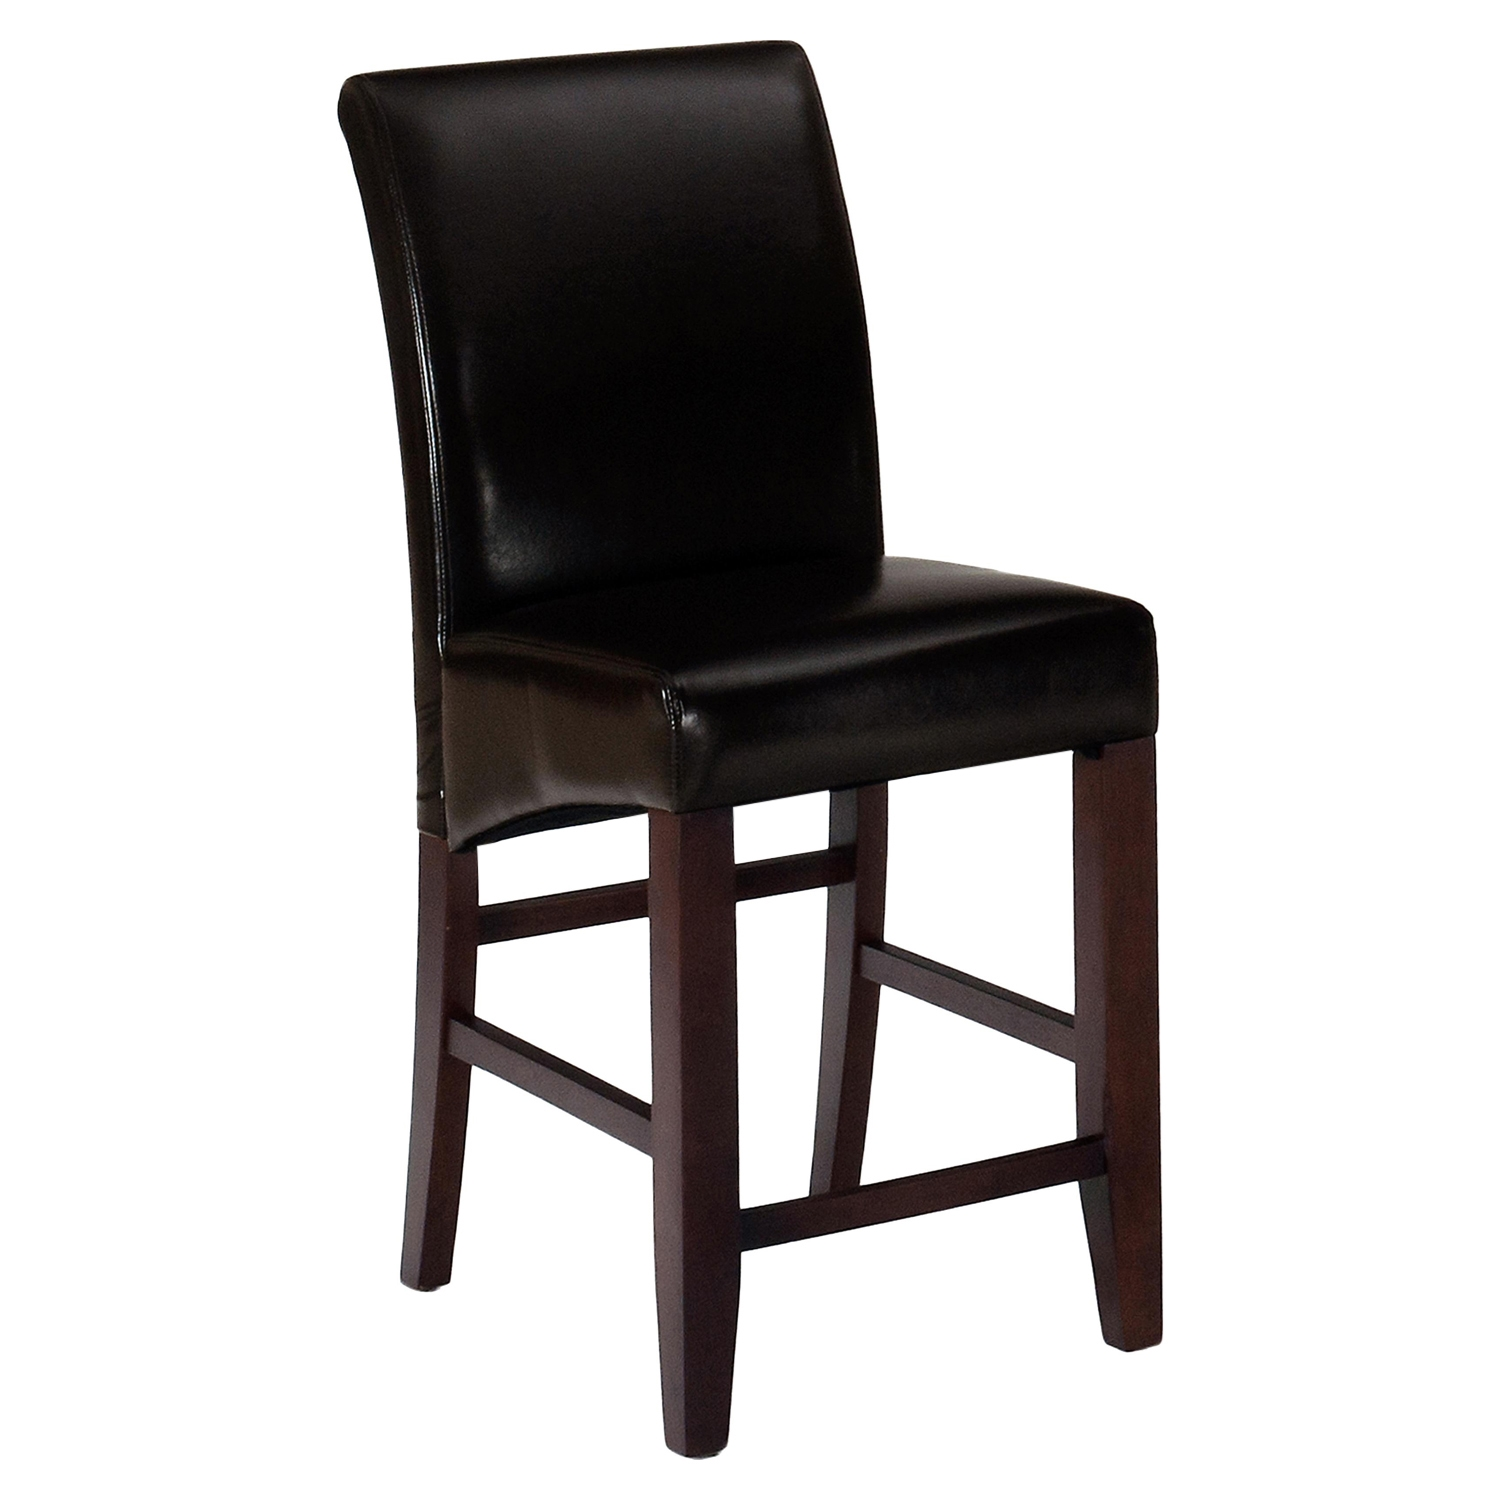 Bonded Leather Counter Height Stool - Cherry - JOFR-888-BS485KD